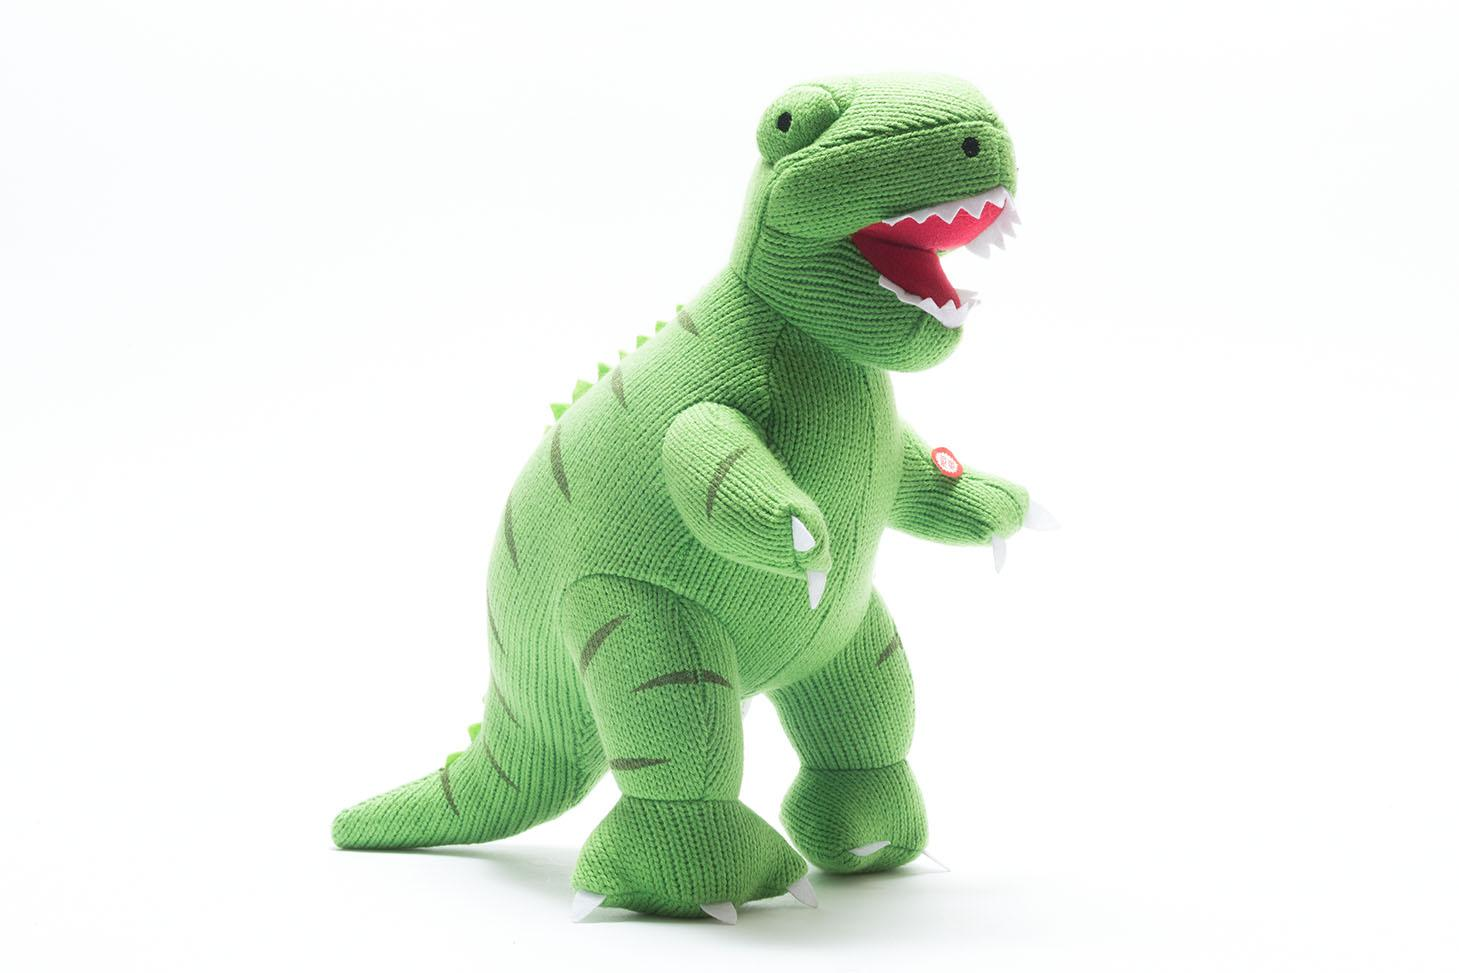 T Rex Dinosaur Toy : Special gifts large roaring t rex dinosaur toy green